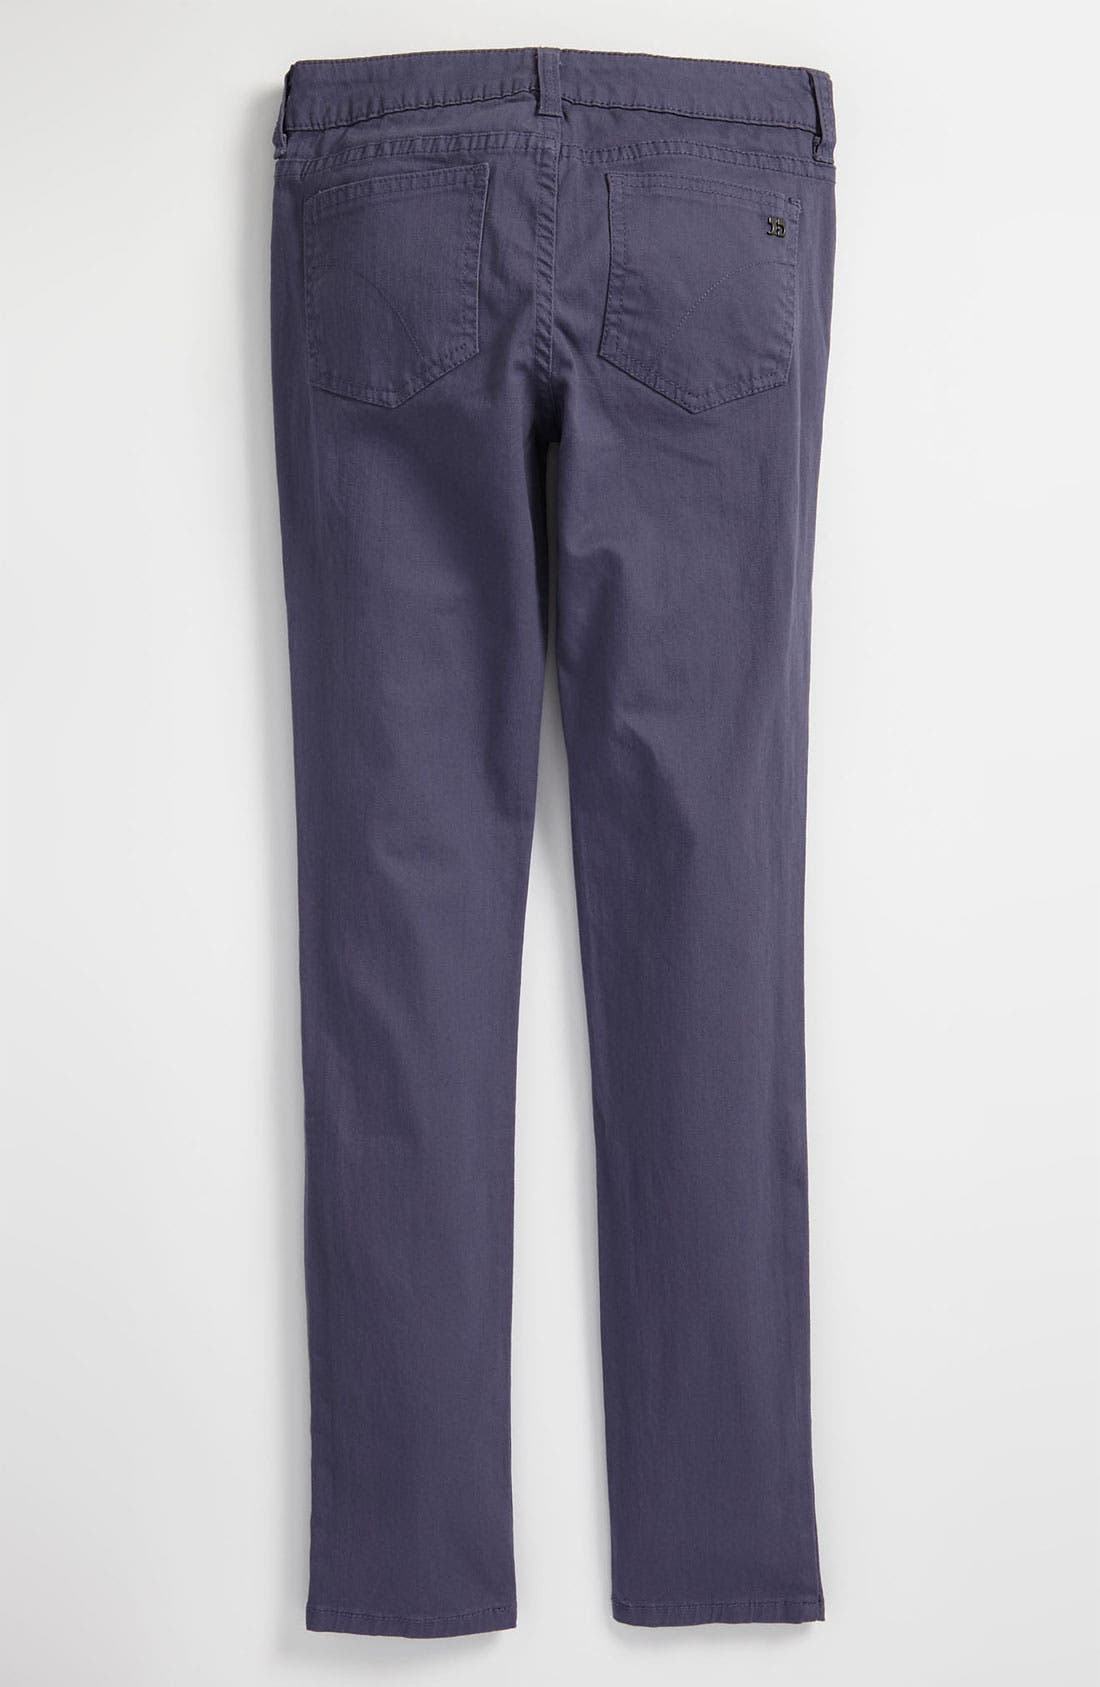 Main Image - Joe's 'Ultra Slim Fit' Jeggings (Big Girls)